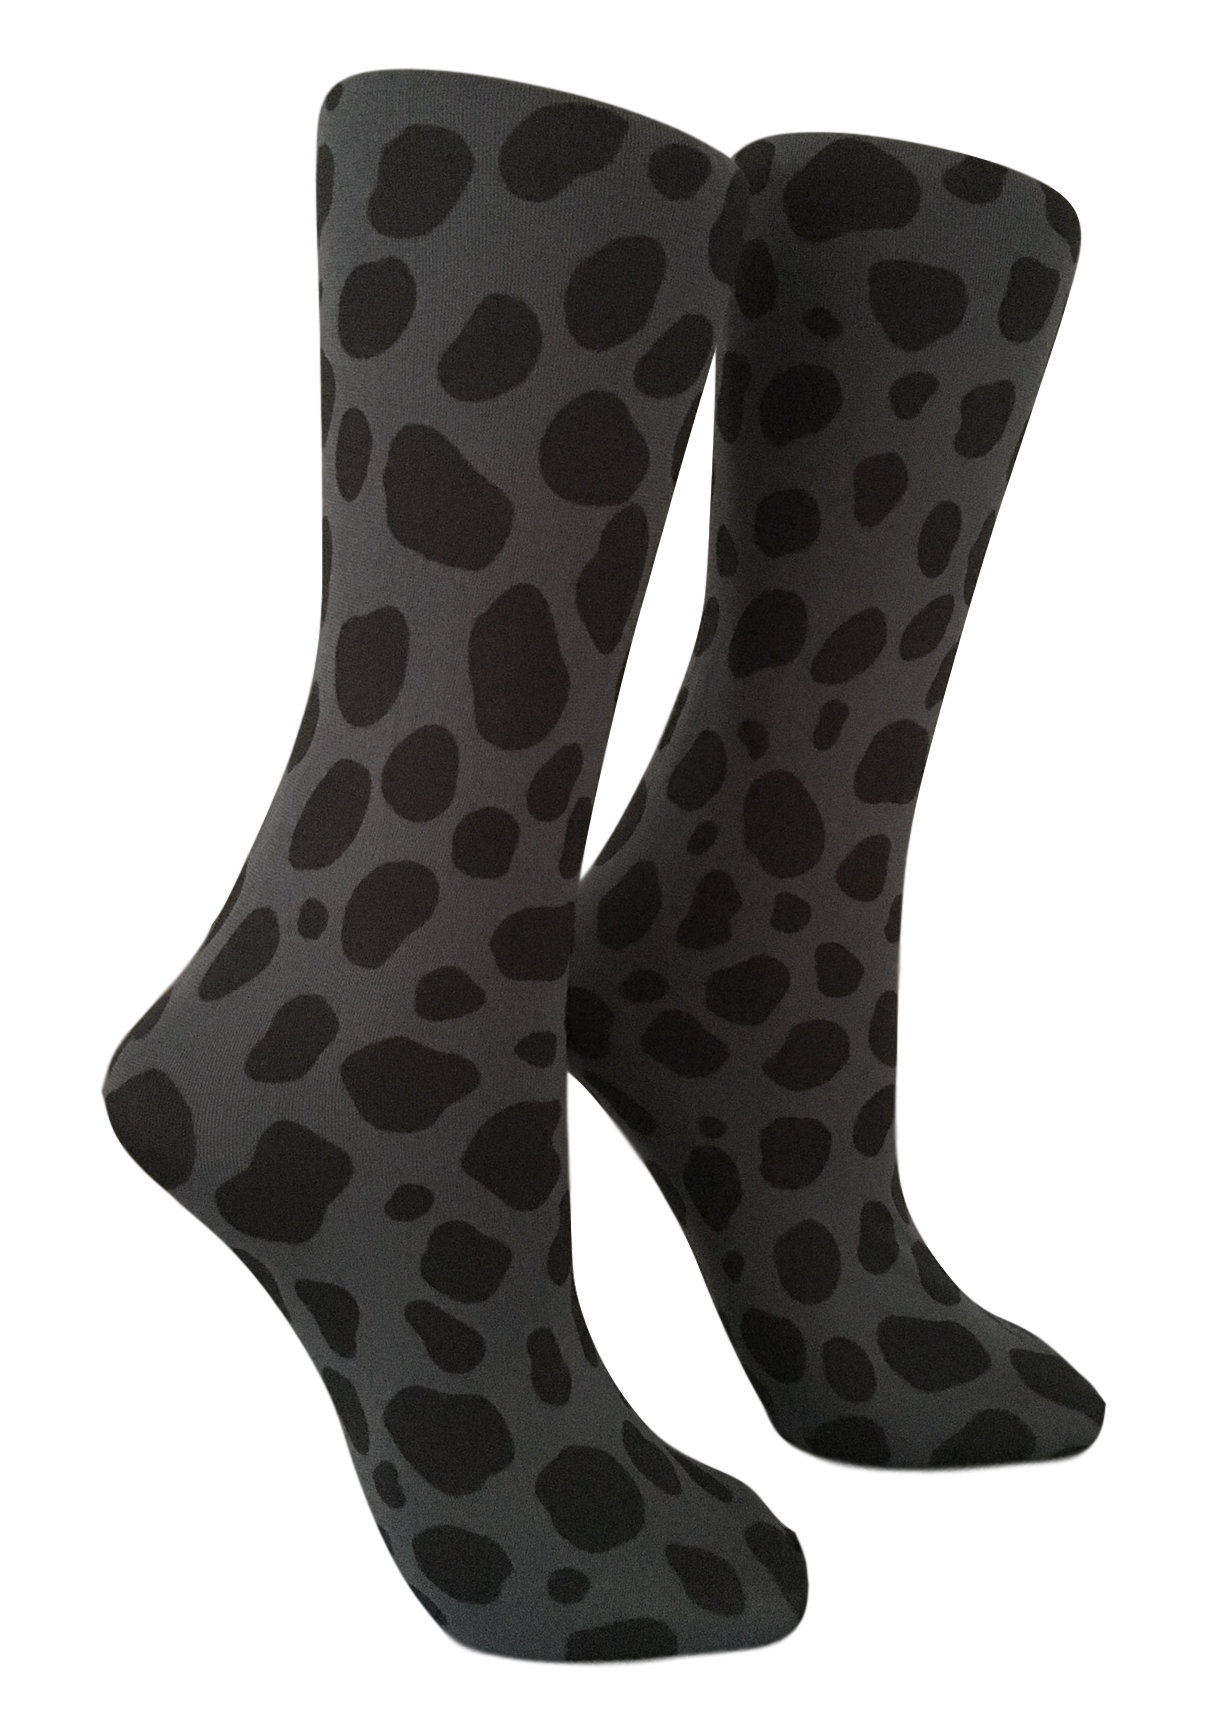 Soxtrot Knee High - Oh One Oh Spots